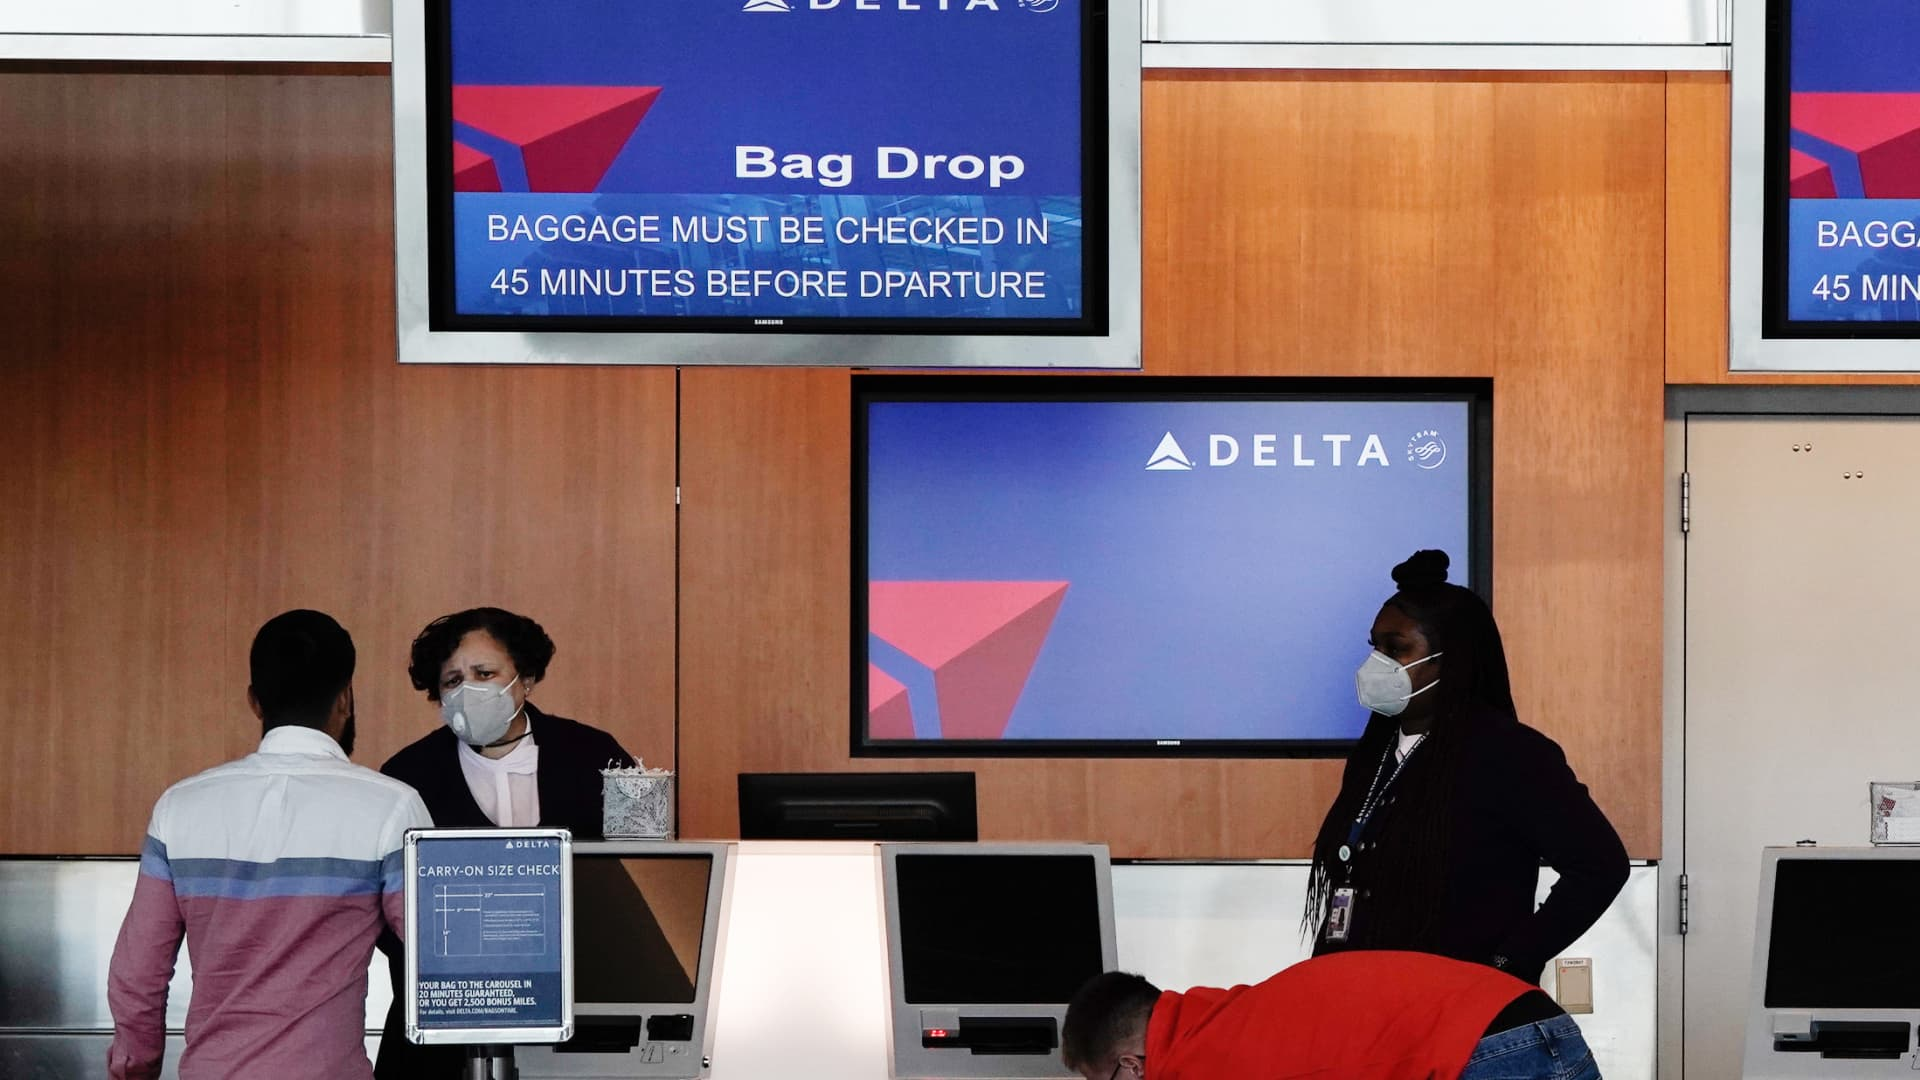 Gate agents assist travelers at a Delta Air Lines Inc. bag drop counter at the San Diego International Airport (SAN) in San Diego, California, U.S., on Monday, April 27, 2020.